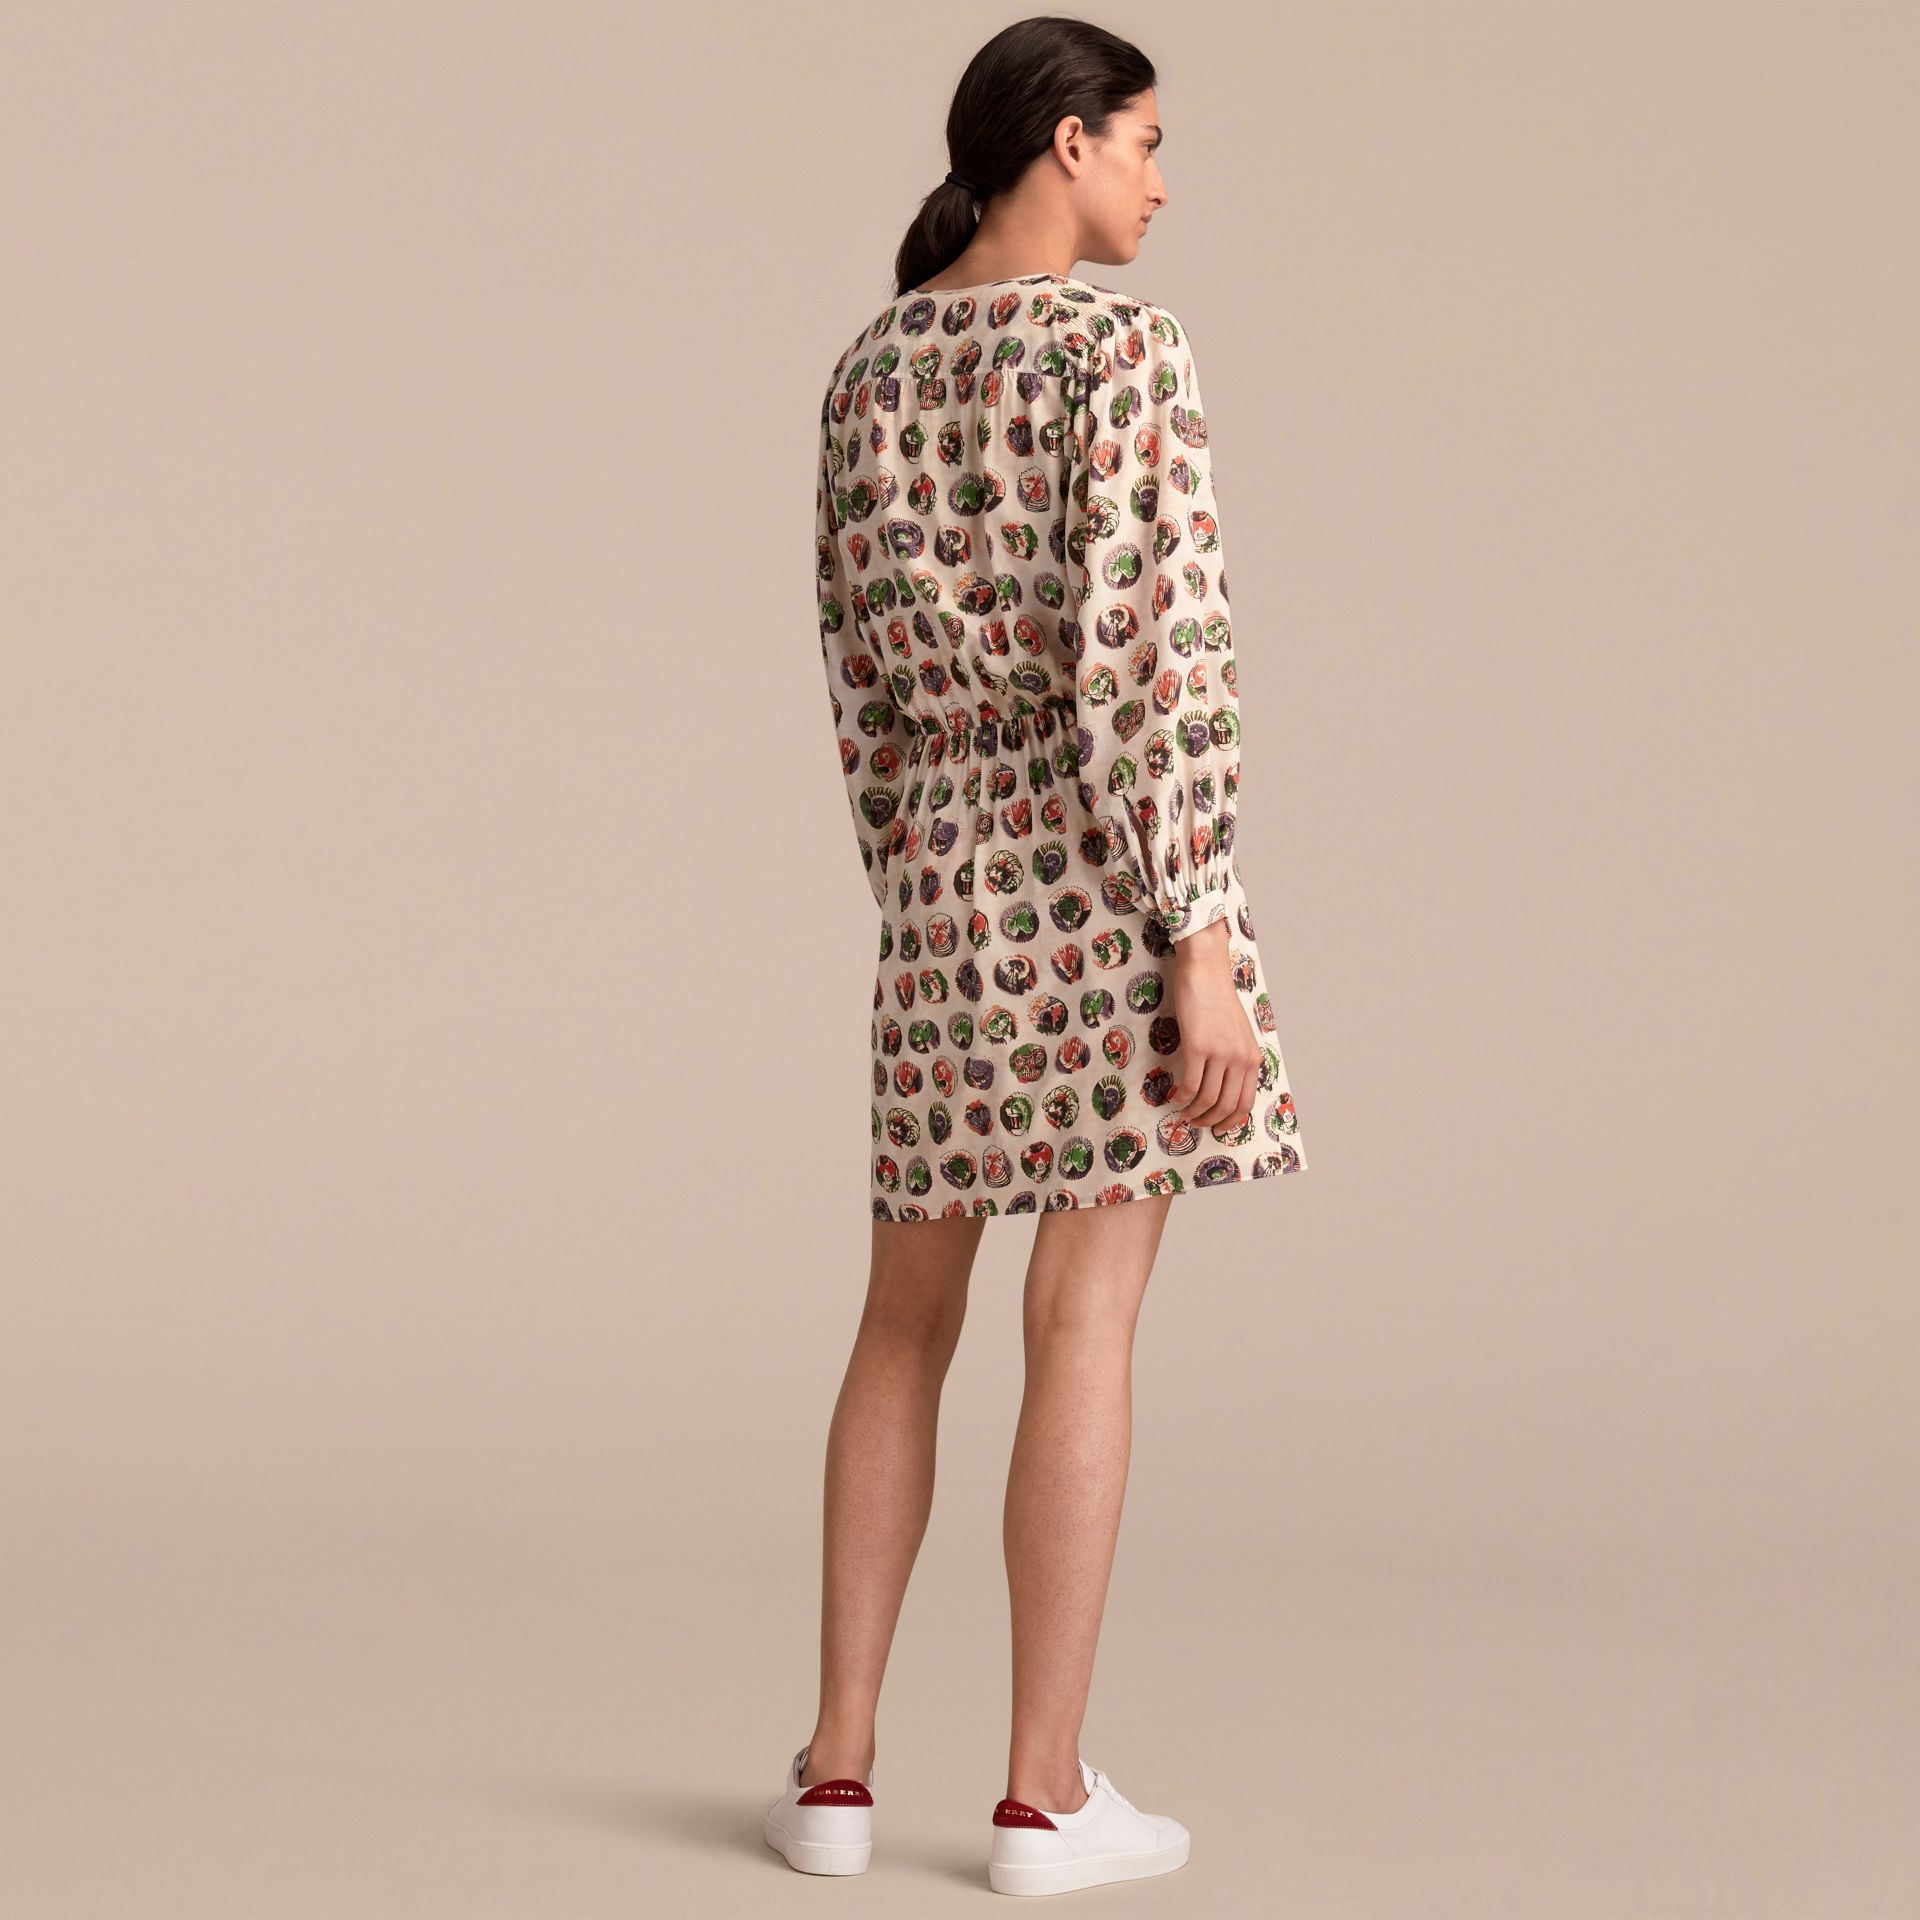 Pallas Heads Print Silk Dress with Neck Tie in Natural White - Women | Burberry United Kingdom - gallery image 3